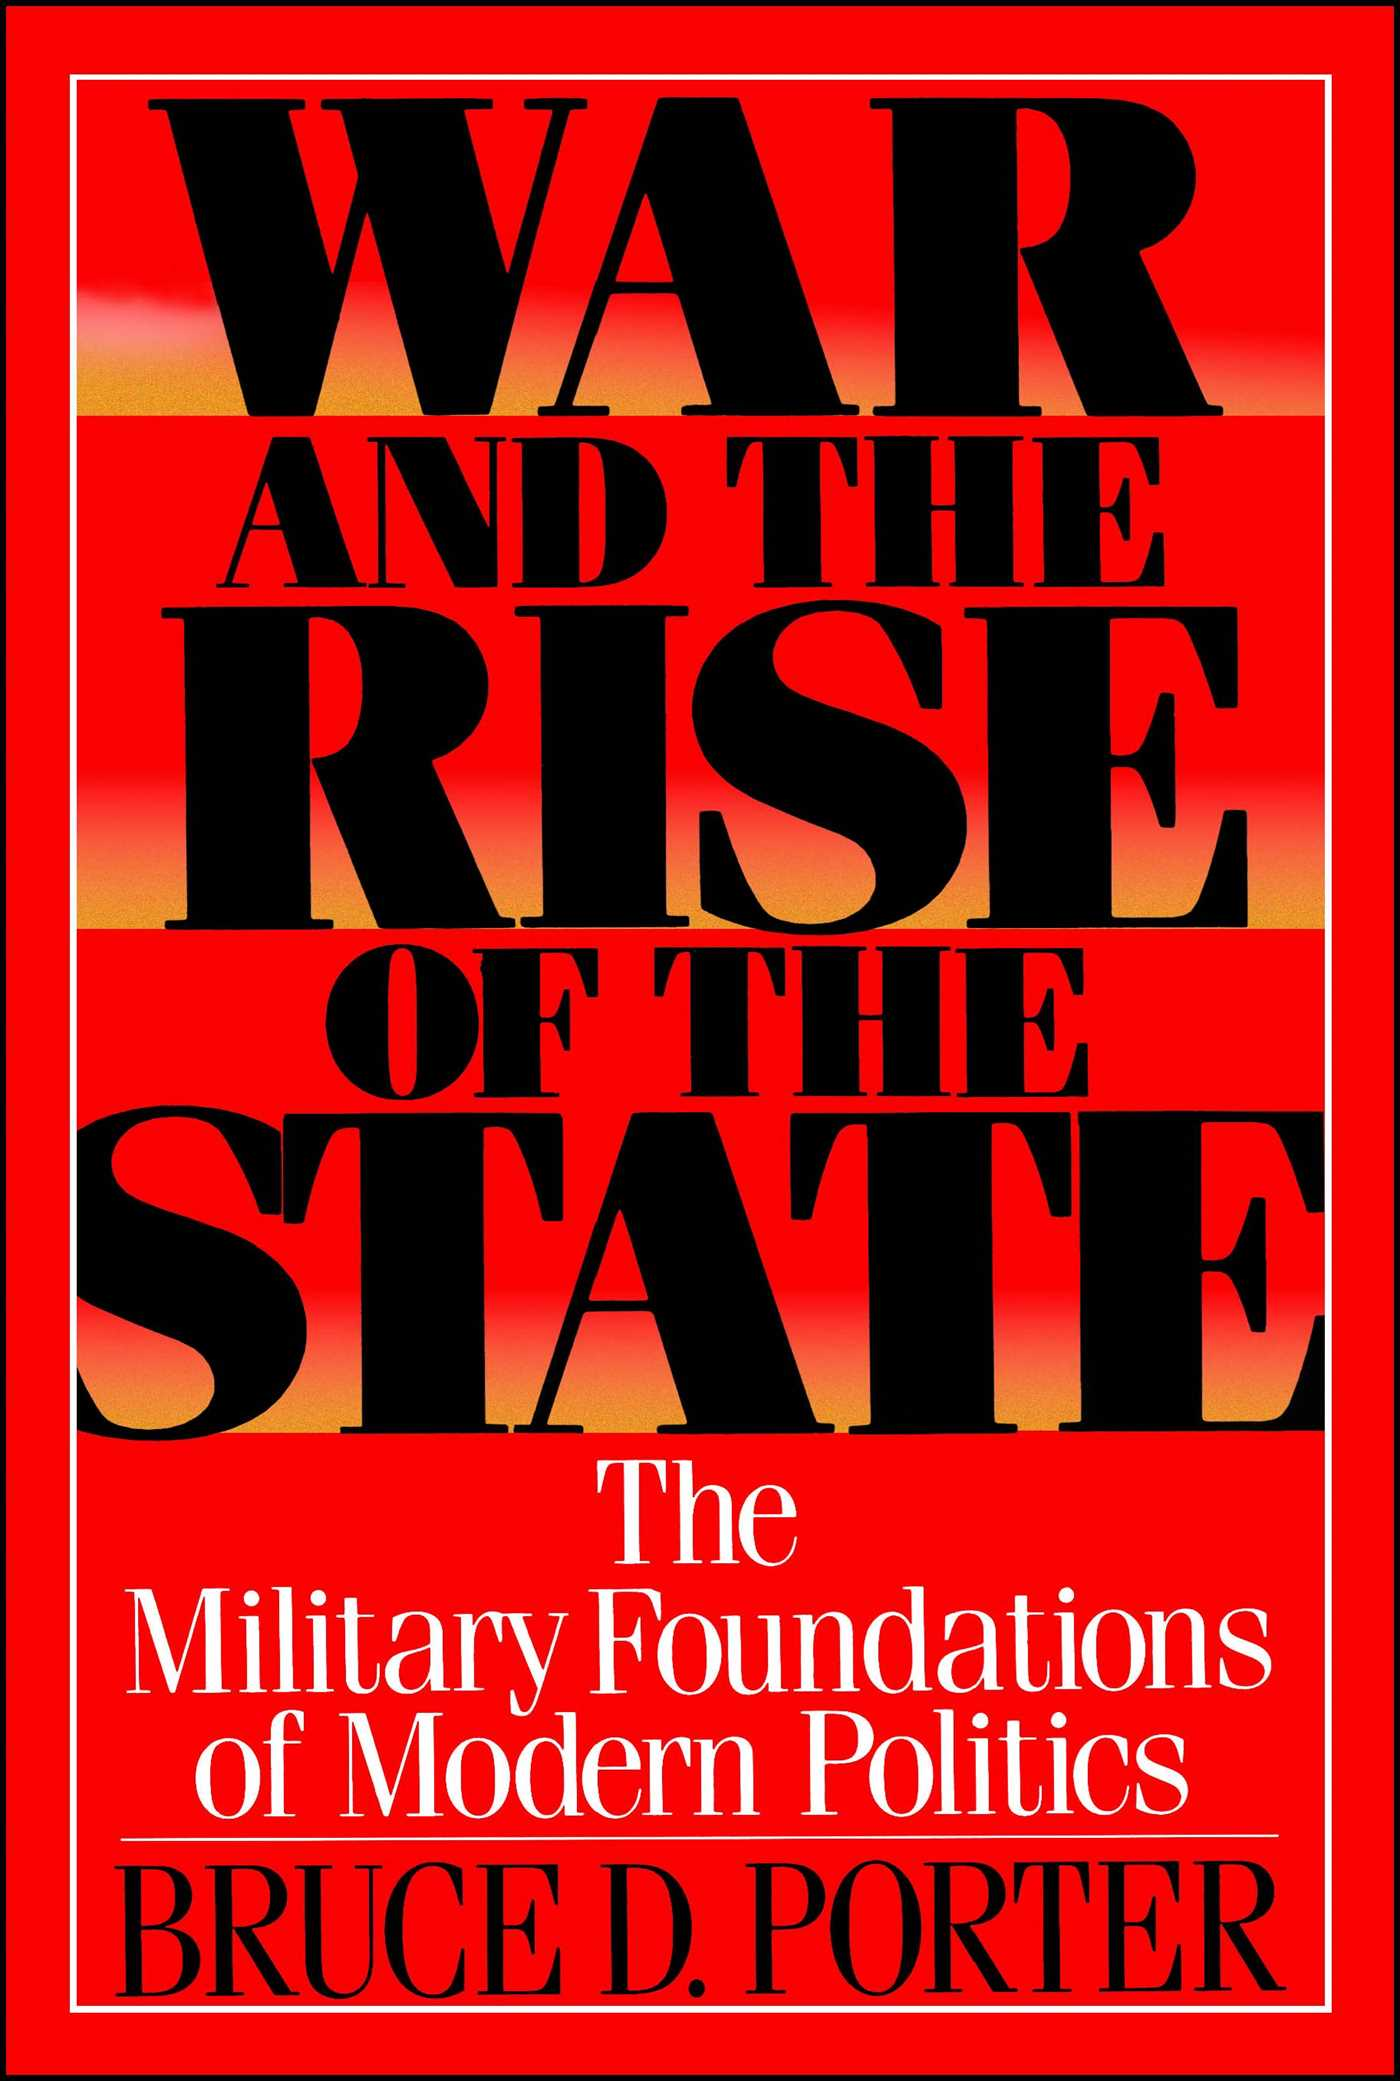 War and the rise of the state 9780743237789 hr